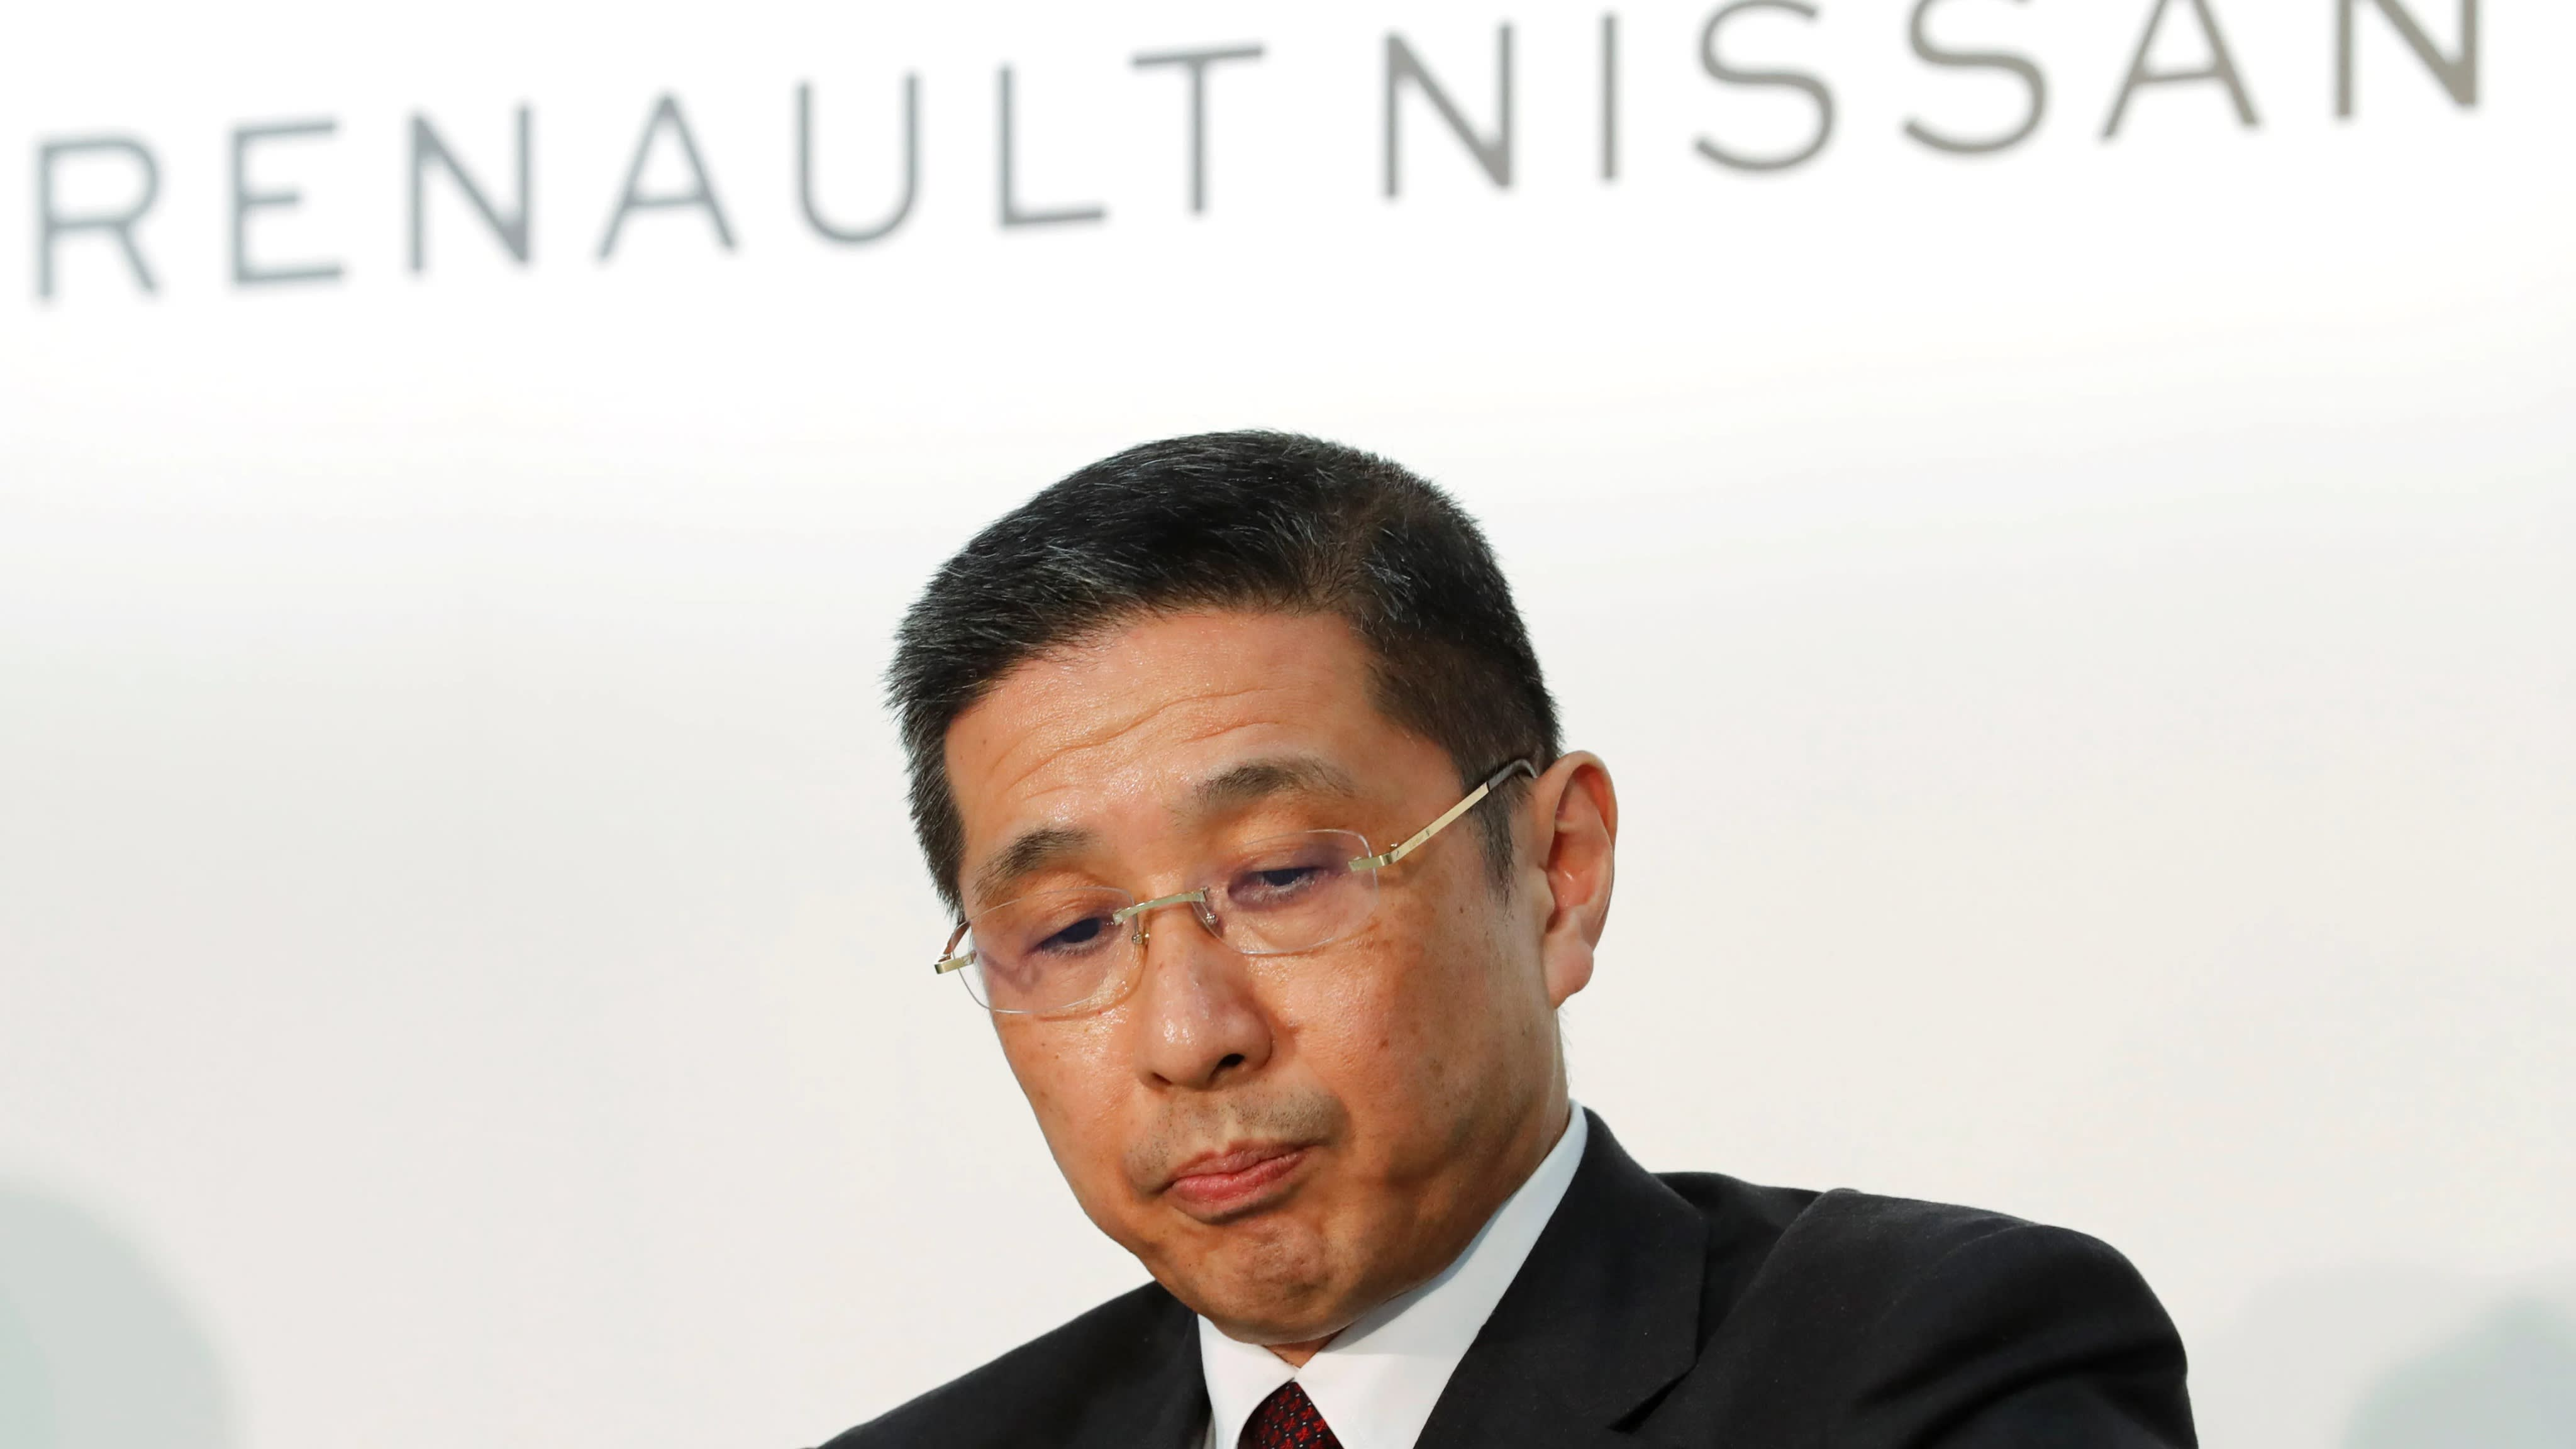 Nissan CEO Saikawa admits he was overpaid, in policy violation